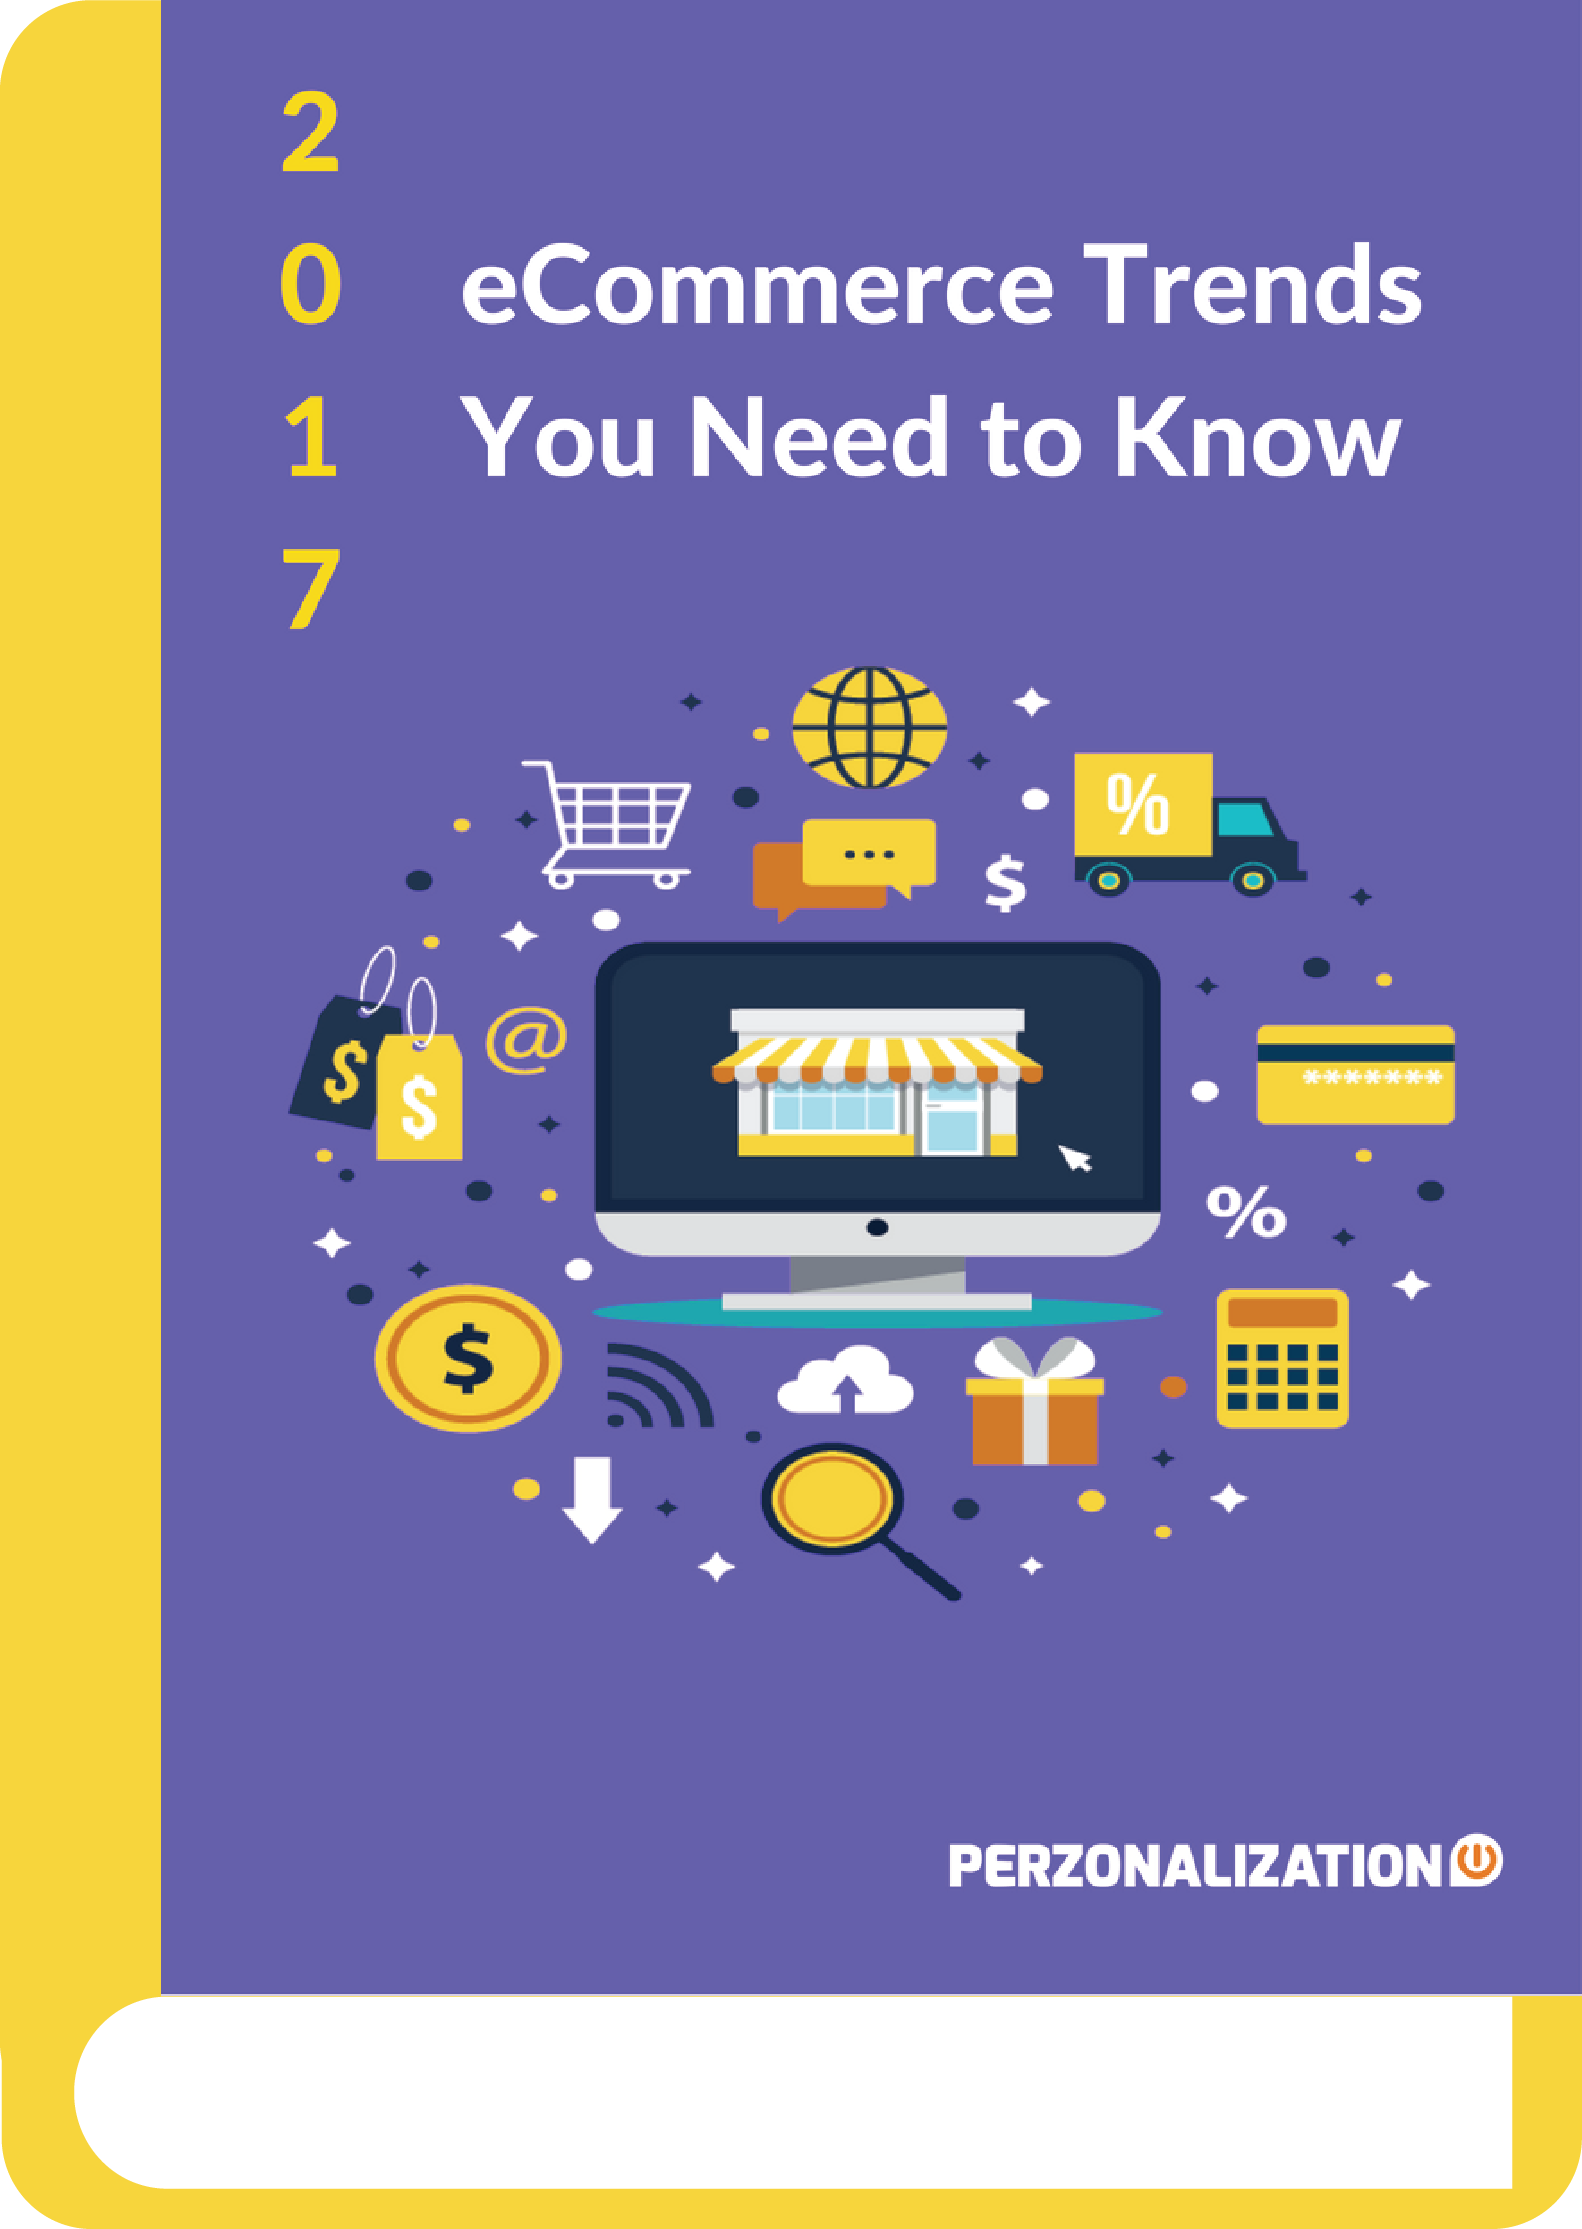 These trends shared by Perzonalization have changed eCommerce business in 2017. Let us look at the trends that defined eCommerce business this year.